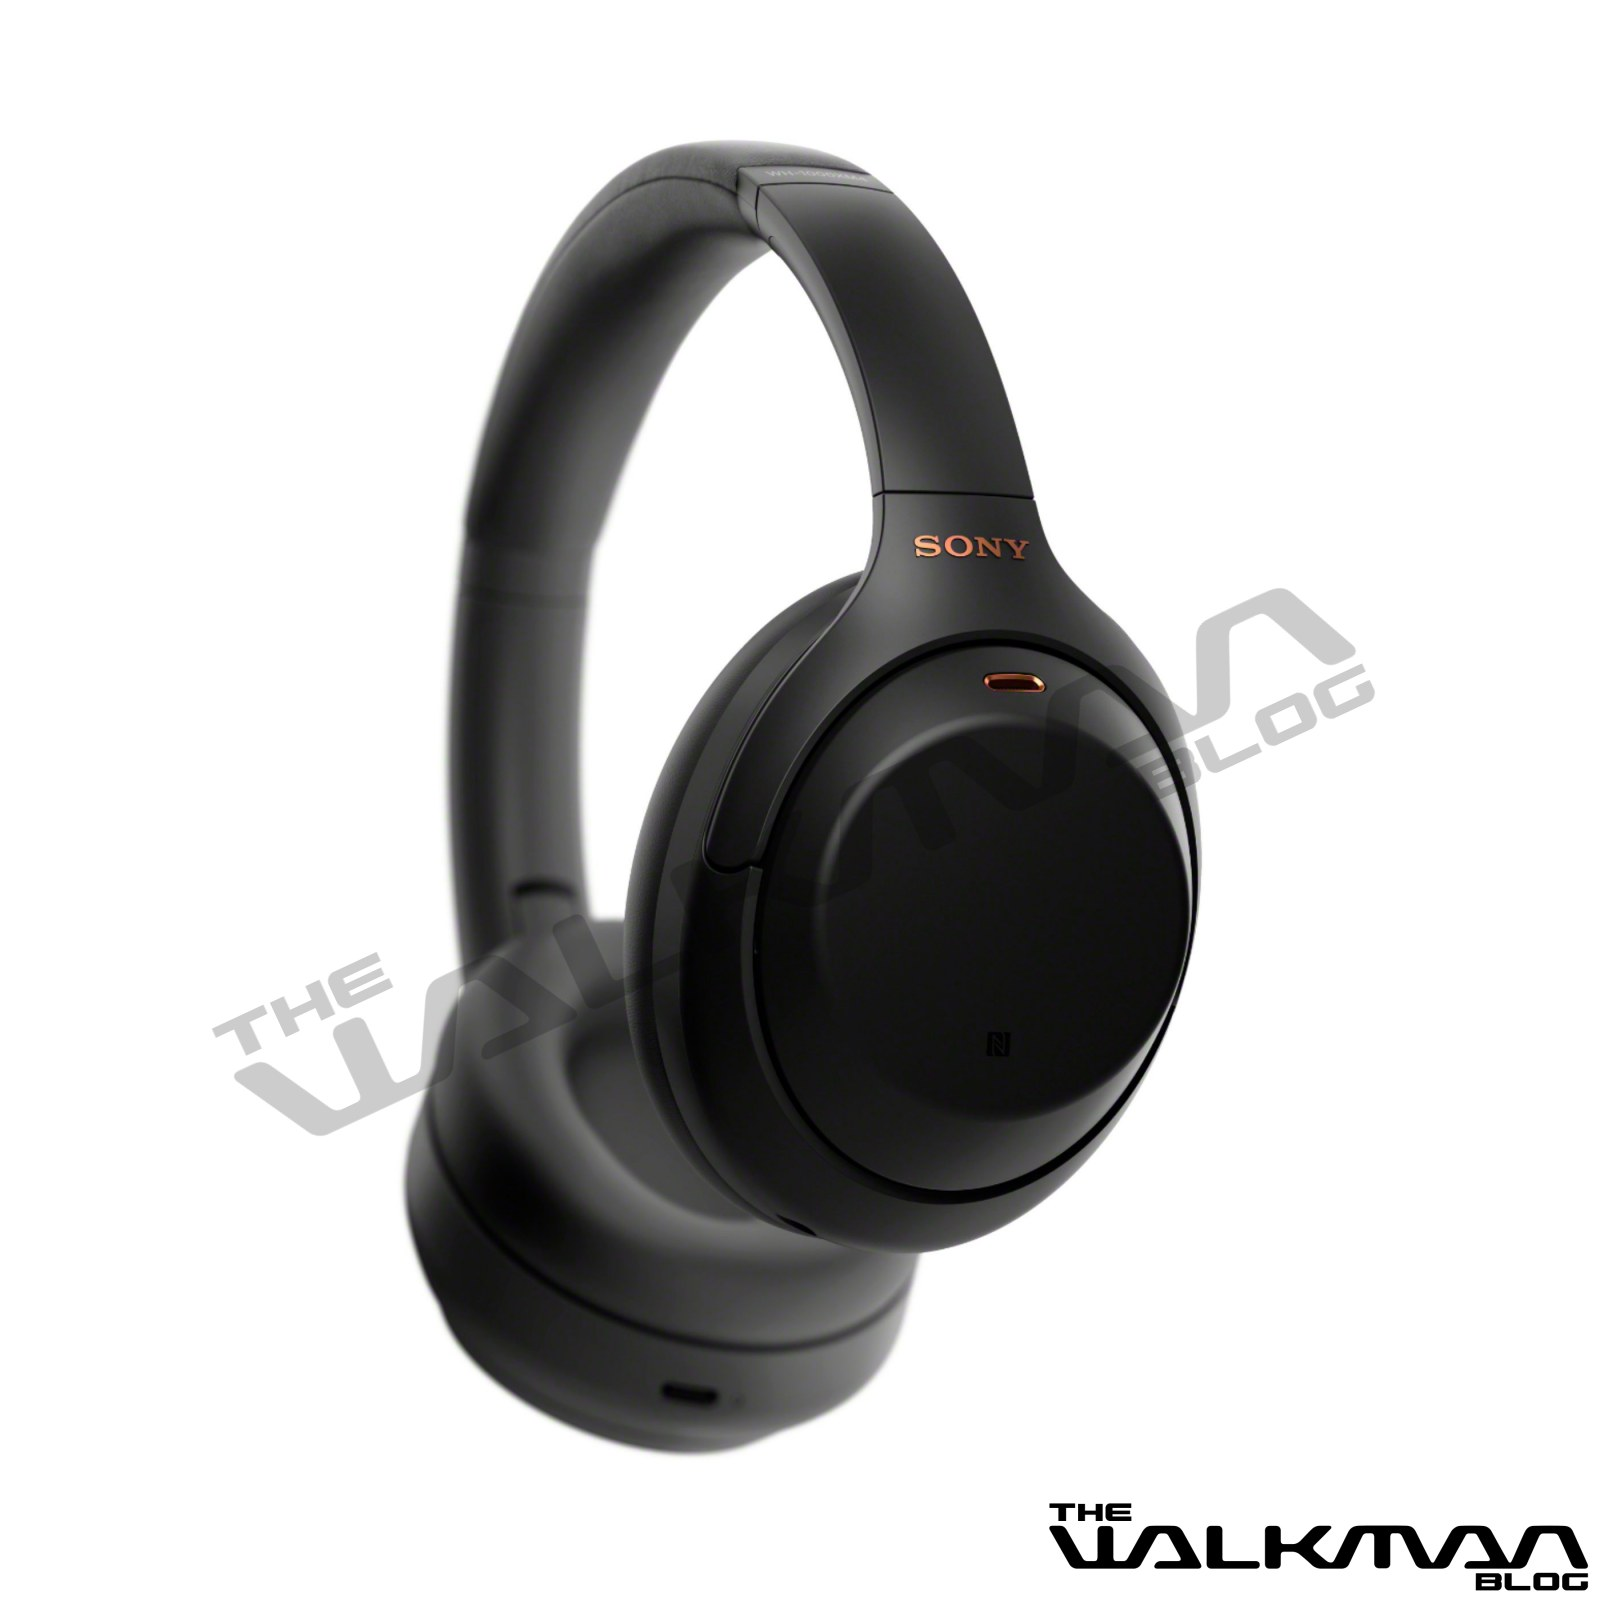 Sony WH-1000XM4 Leaked by Best Buy (update 3) - The